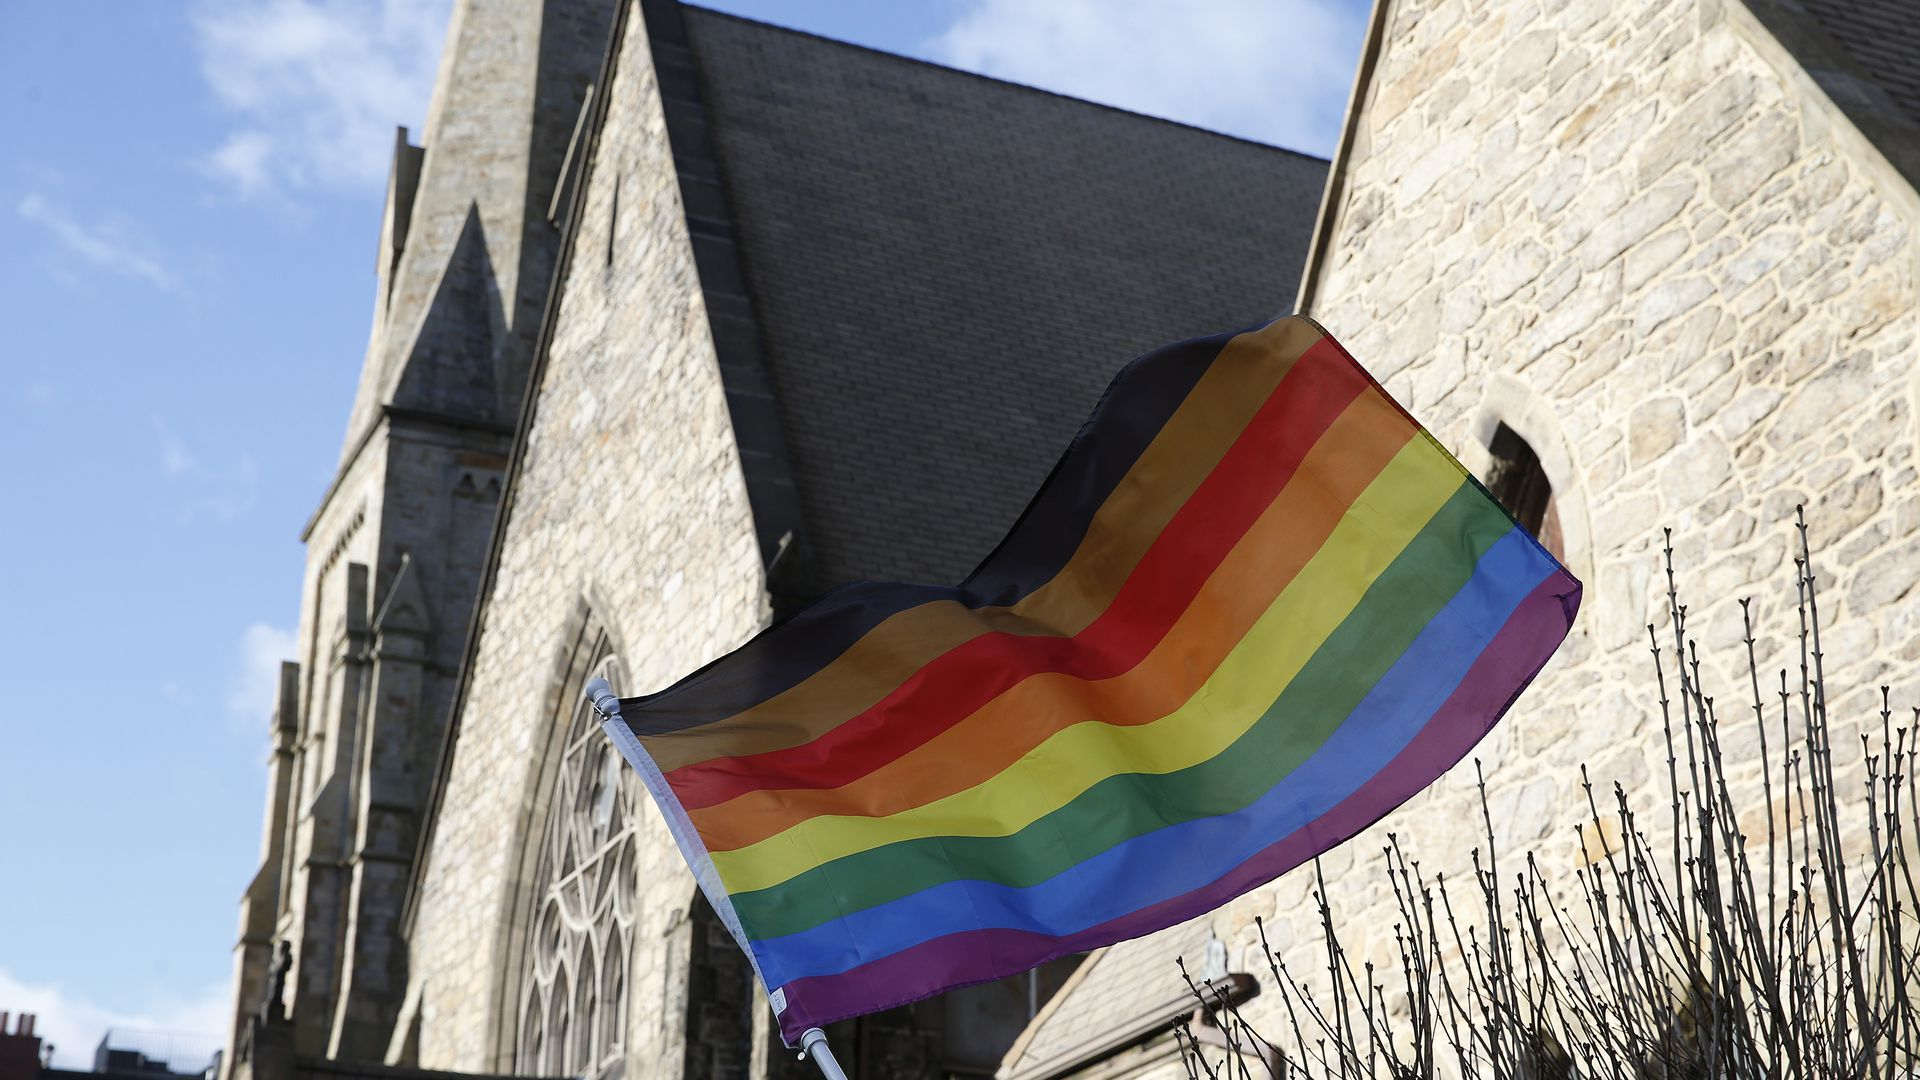 In this image, an LGBTQ pride flag waves in front of a church.